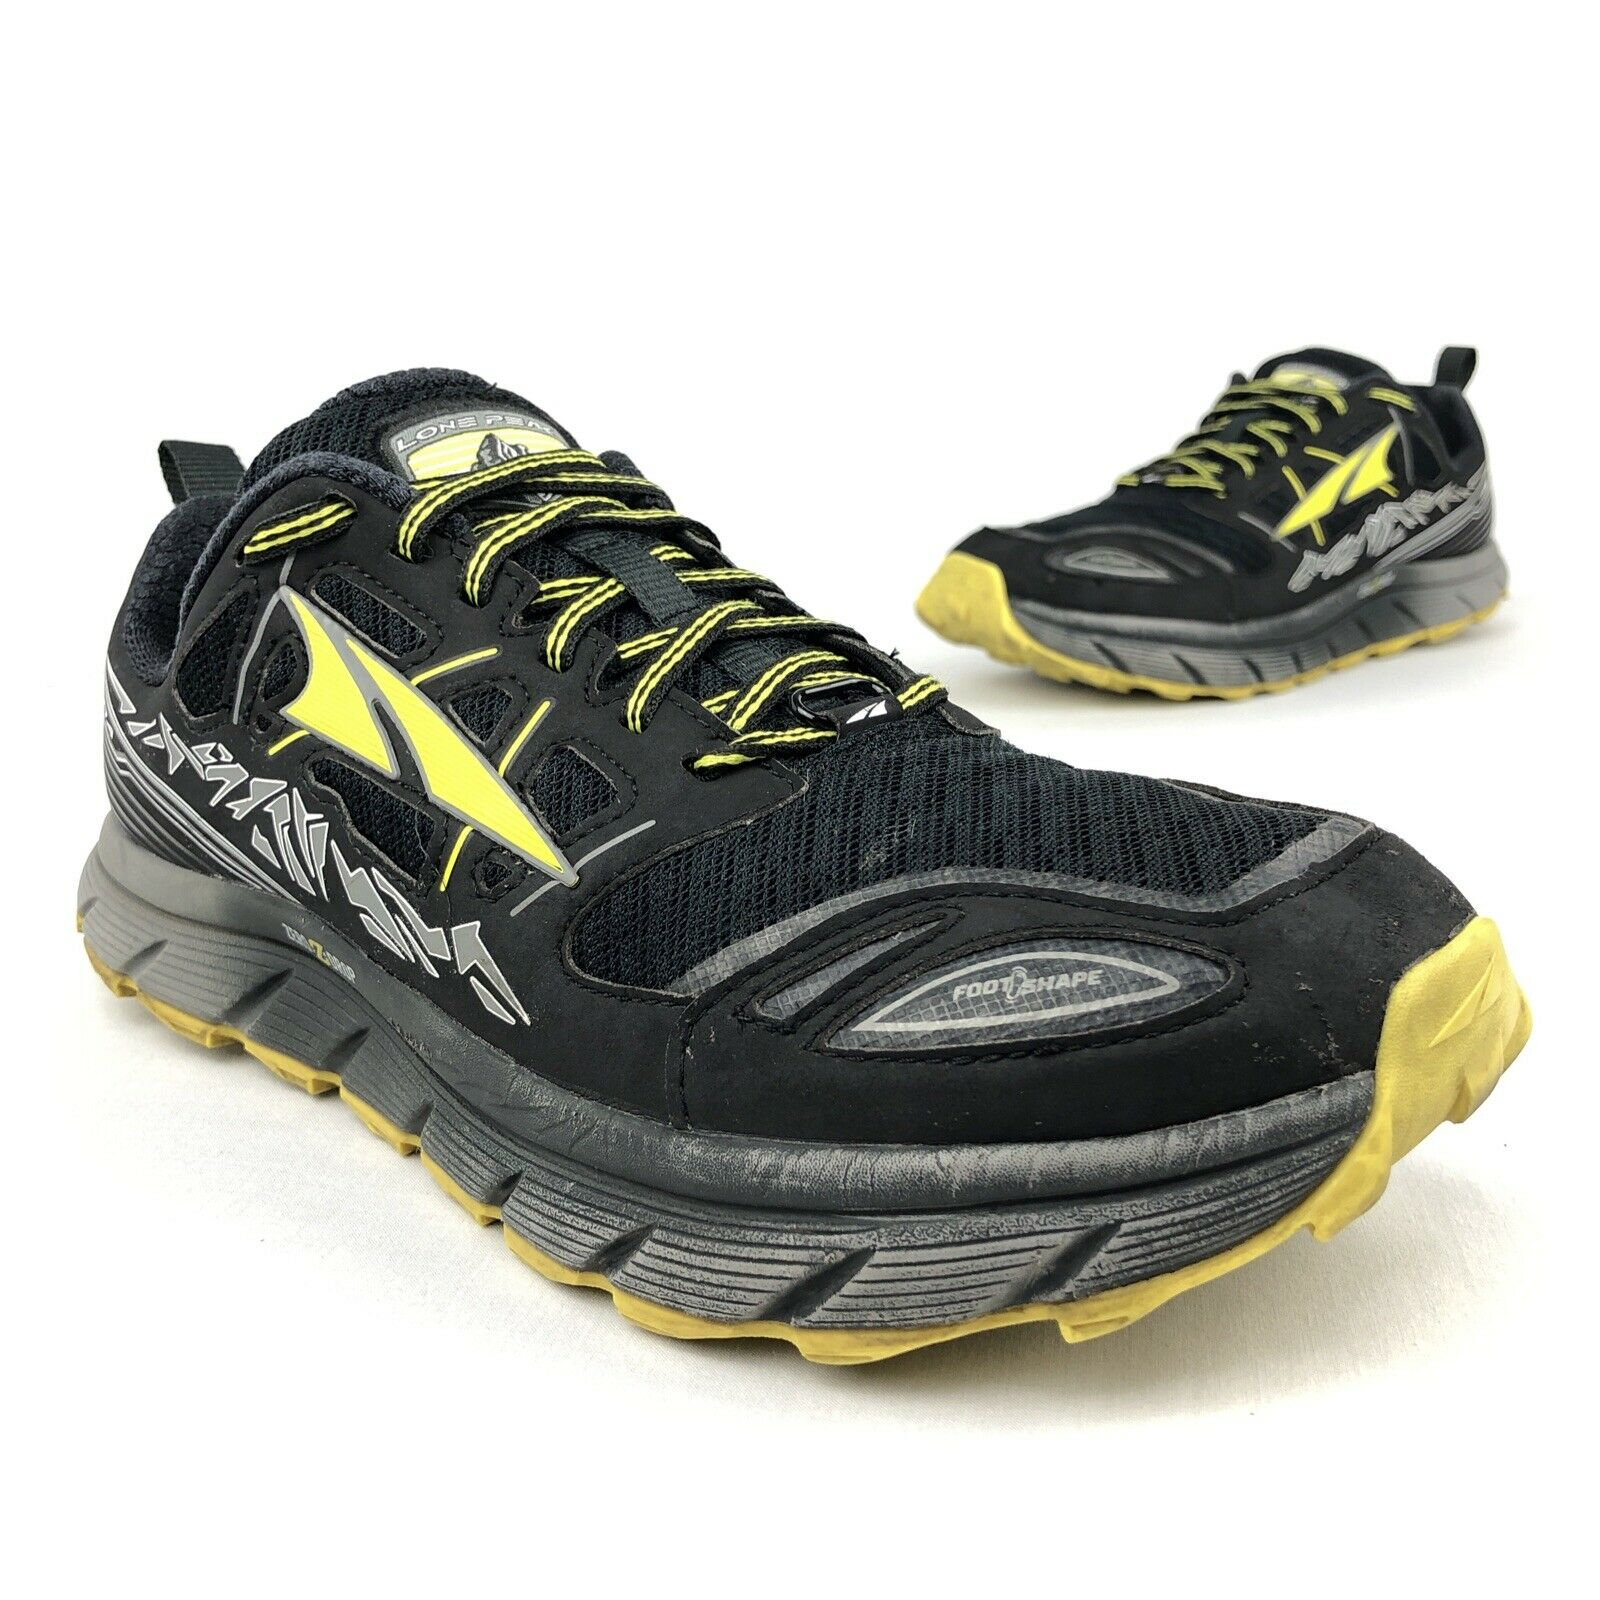 Altra Lone Peak 3 0 Trail Running Shoes Zero Drop Black Yellow A1653 Men S Sz 9 For Sale Online